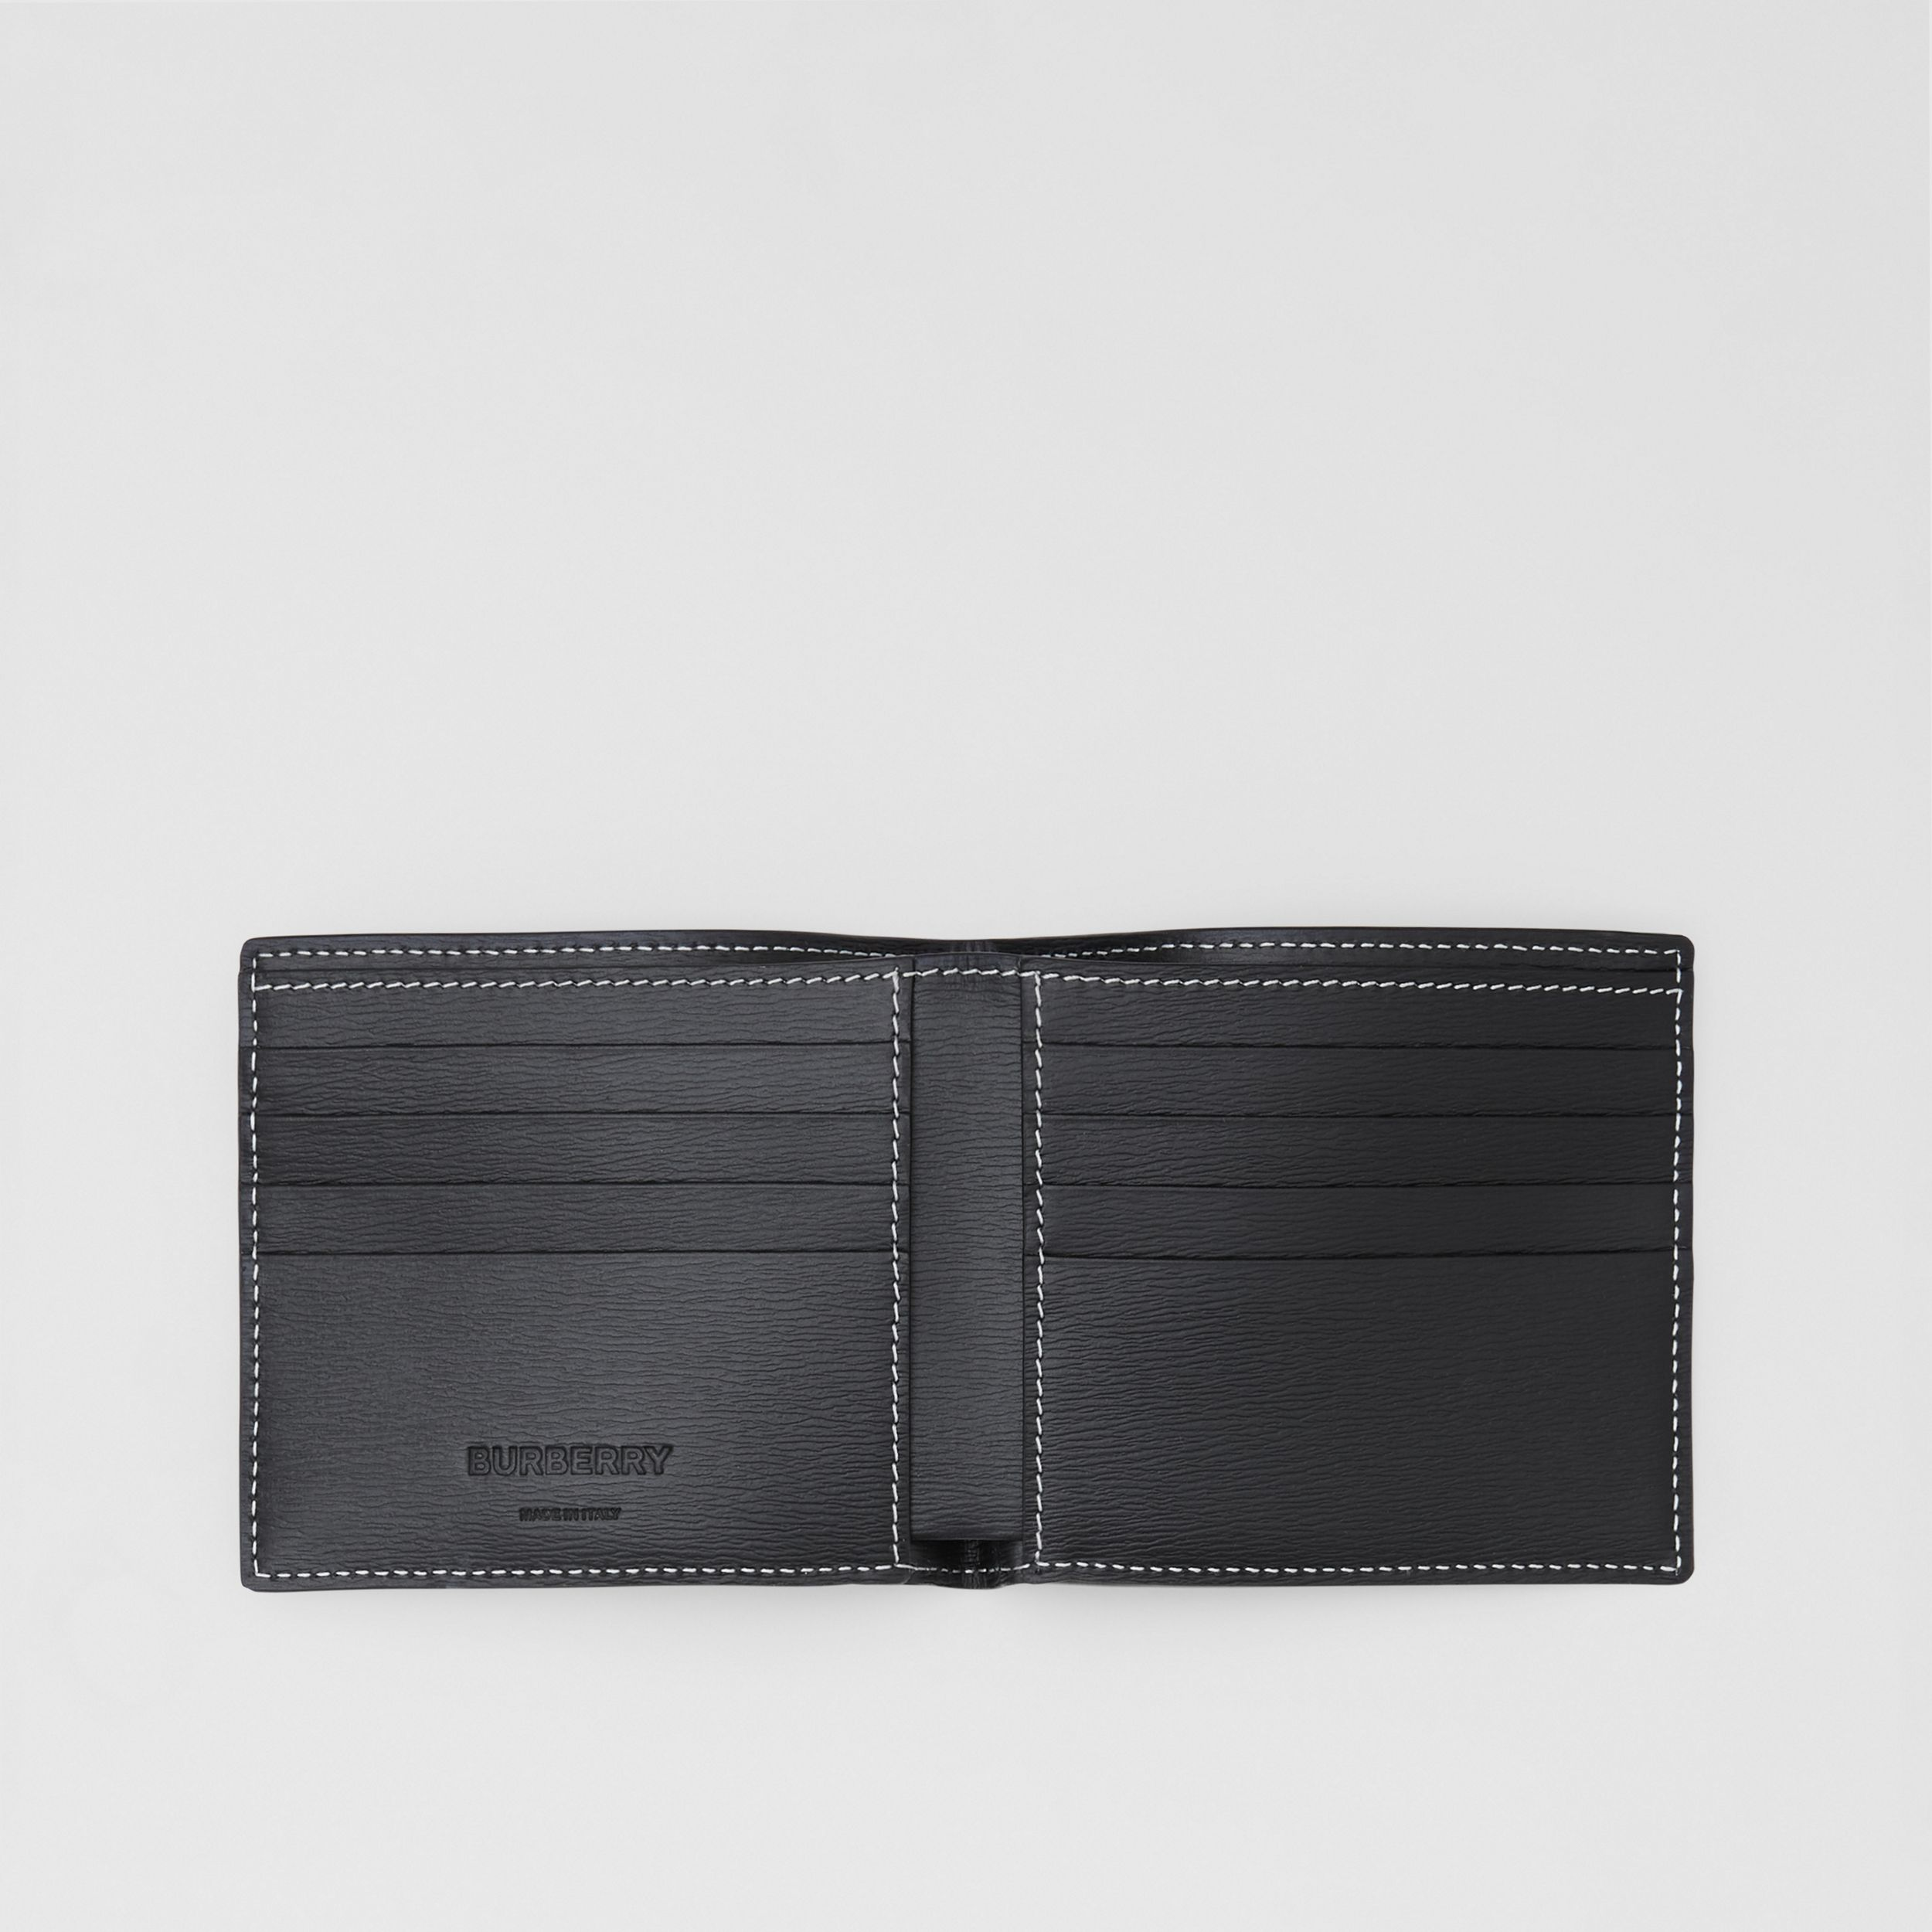 Topstitched Grainy Leather International Bifold Wallet in Black - Men | Burberry - 3